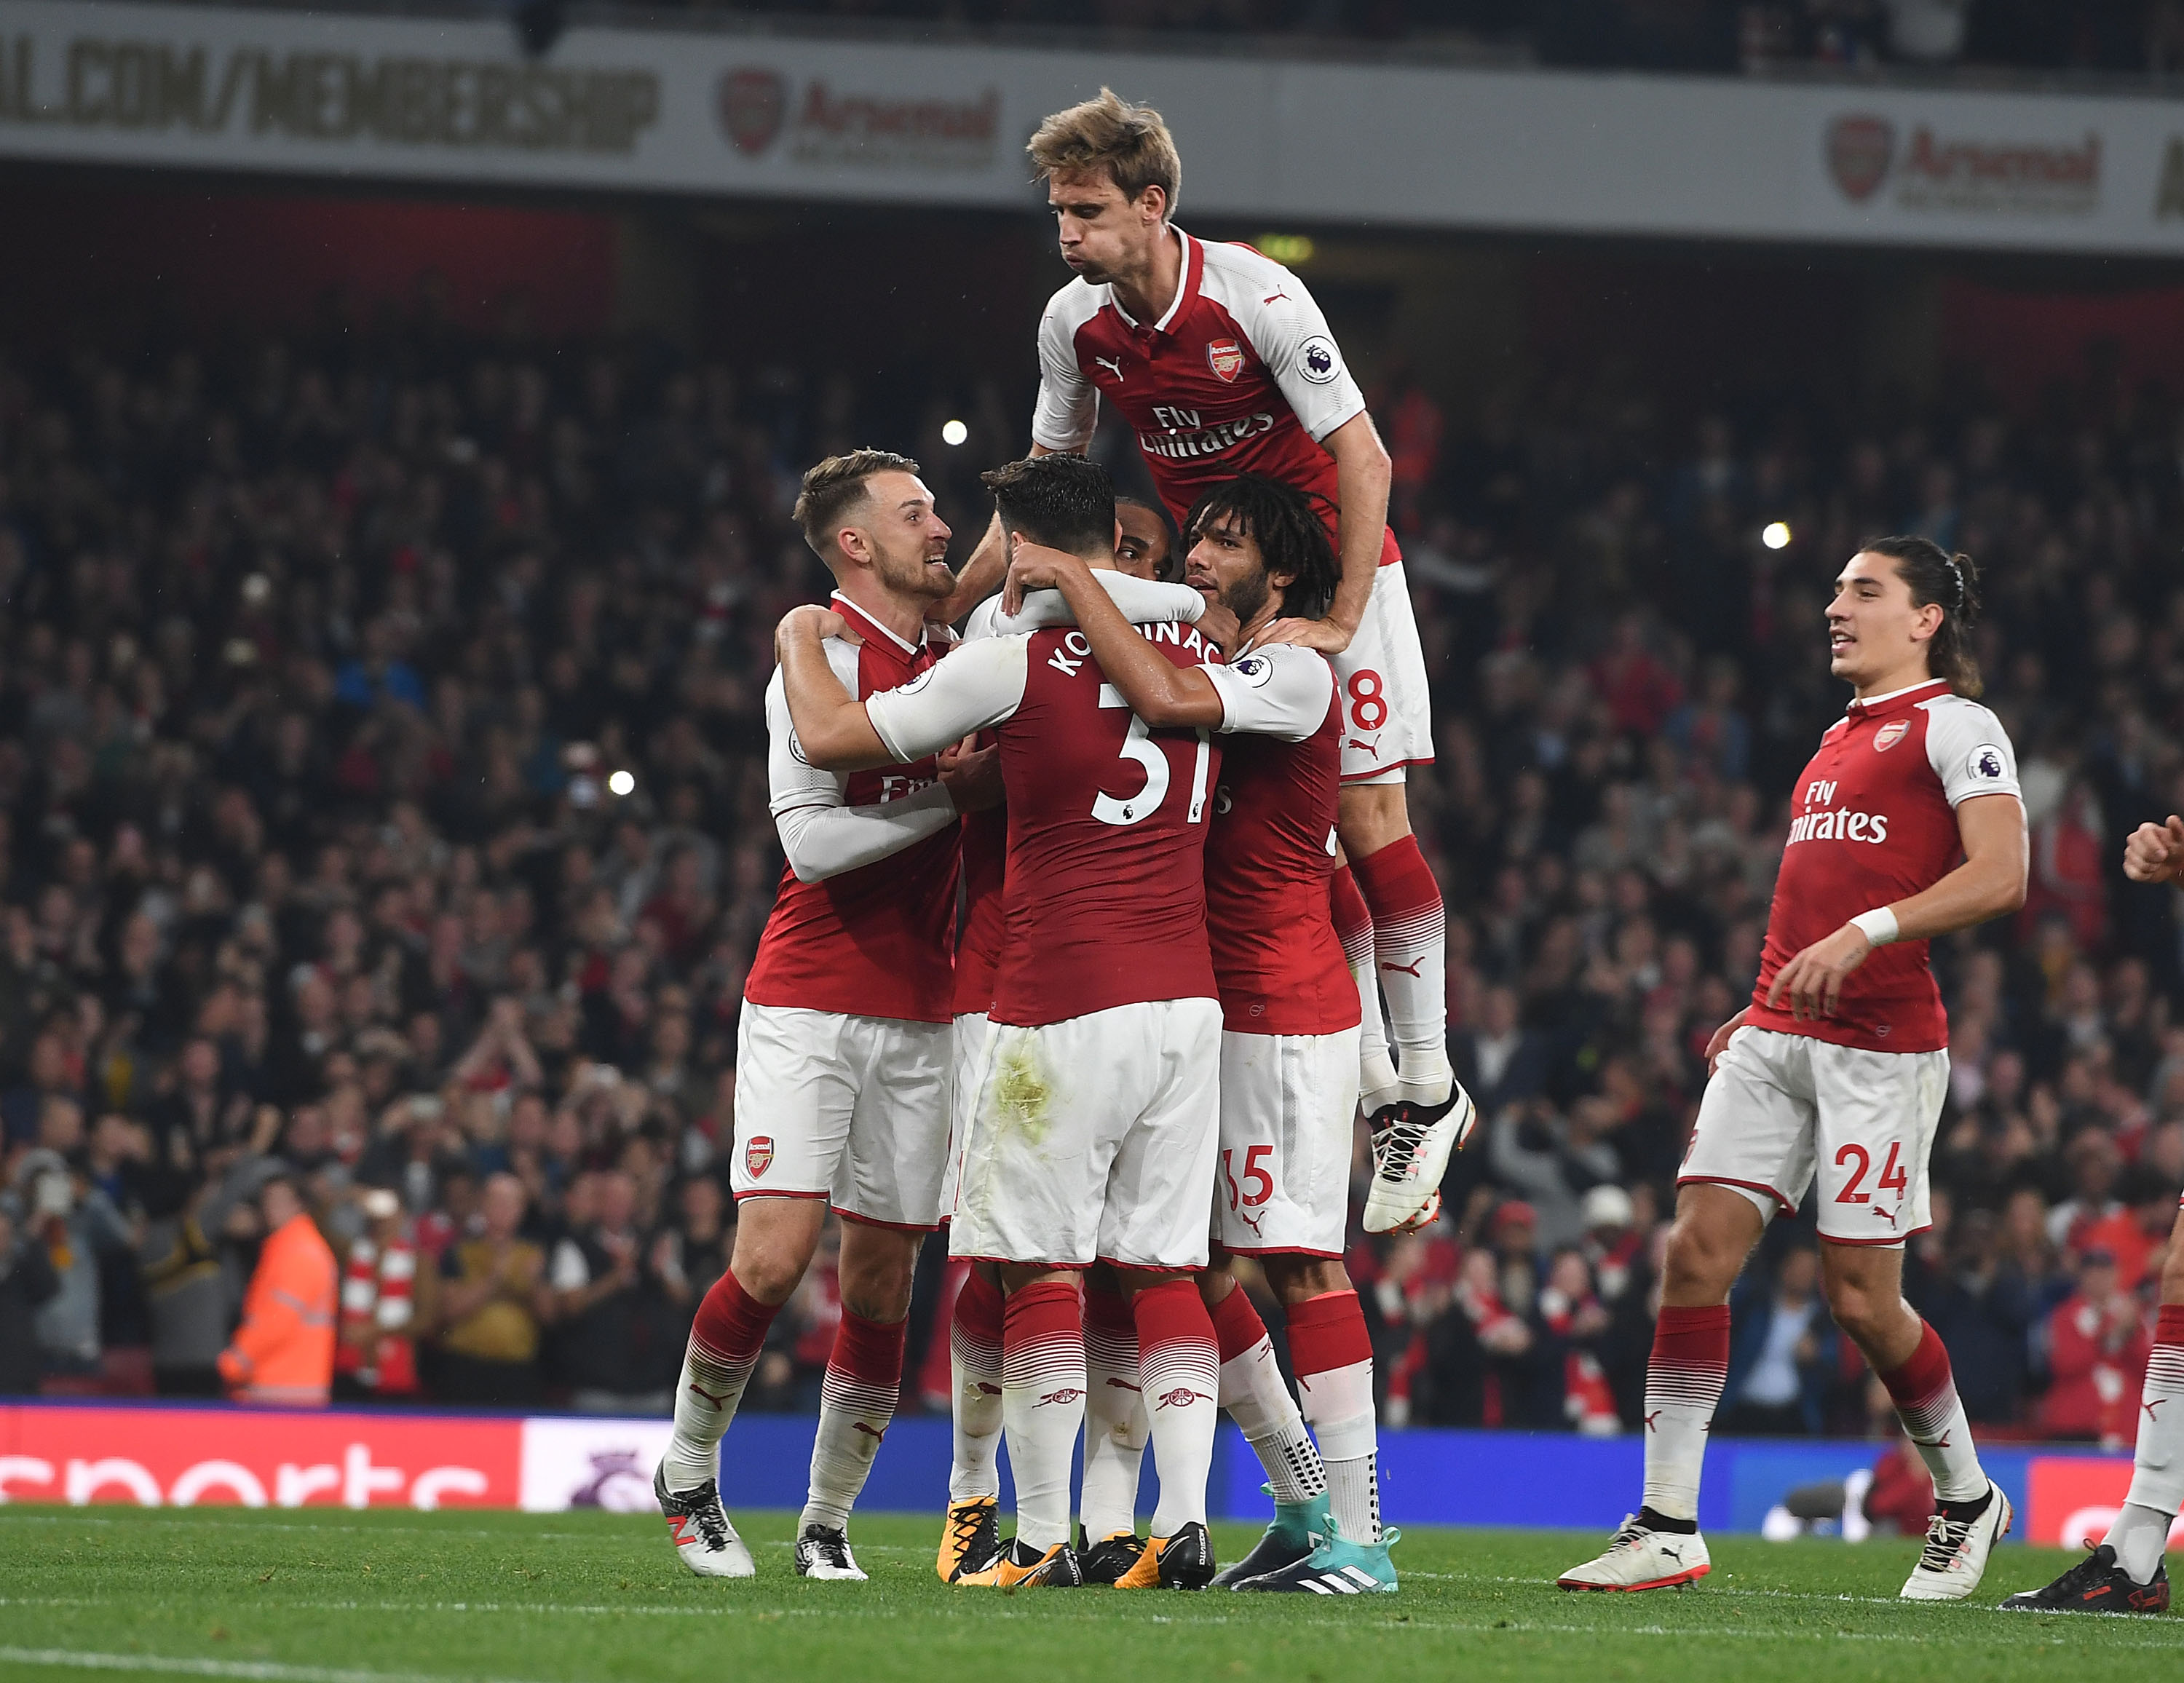 Arsenal's Nacho Monreal leads club for tackles, interceptions and clearances